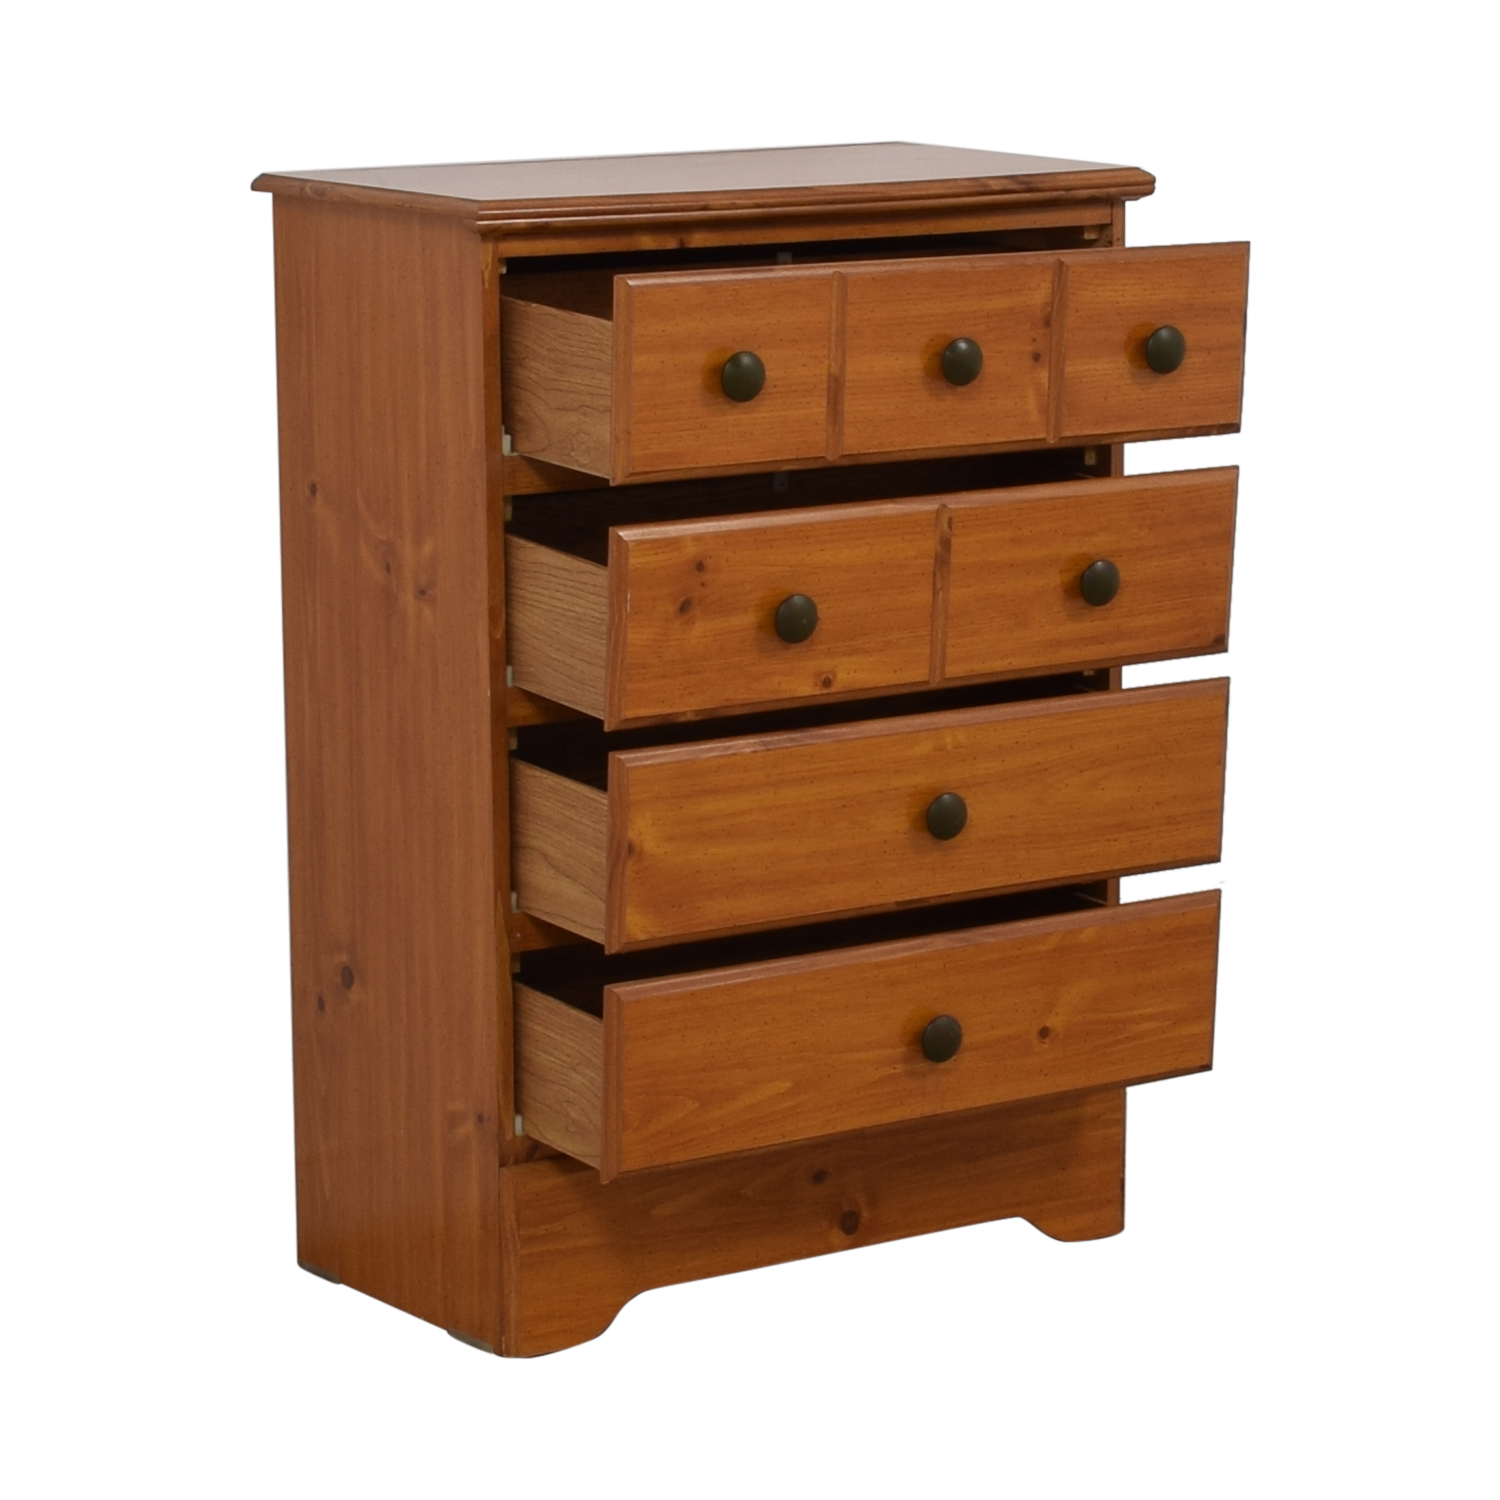 Chestnut Four-Drawer Chest of Drawers / Dressers